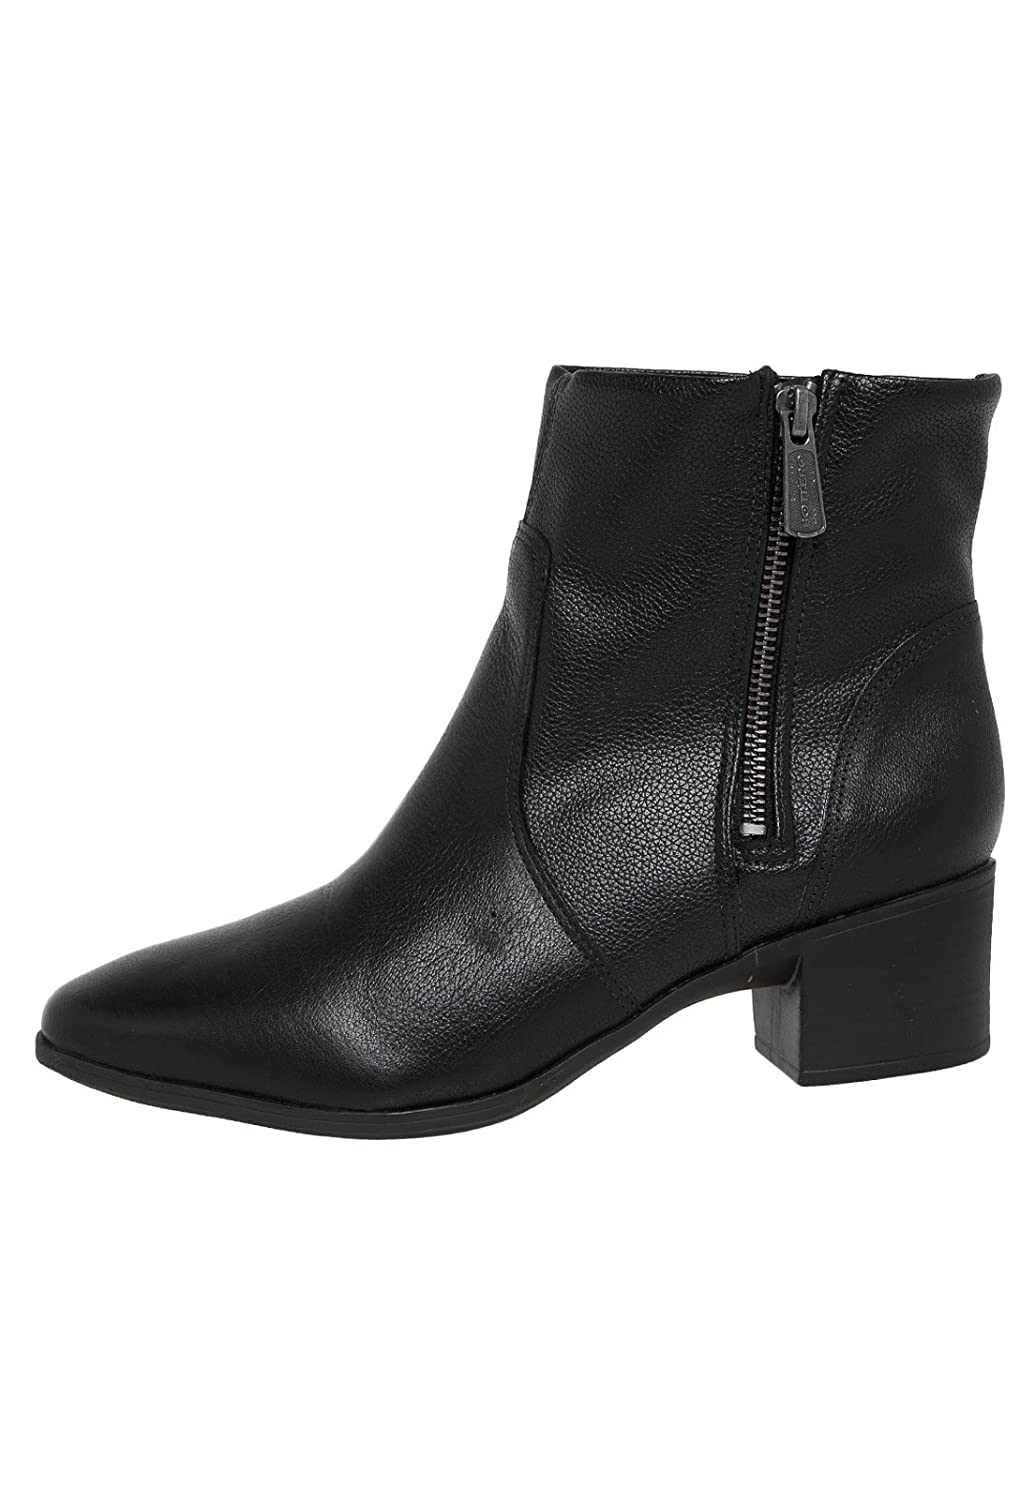 Bottero Womens Over the Ankle Leather Boots